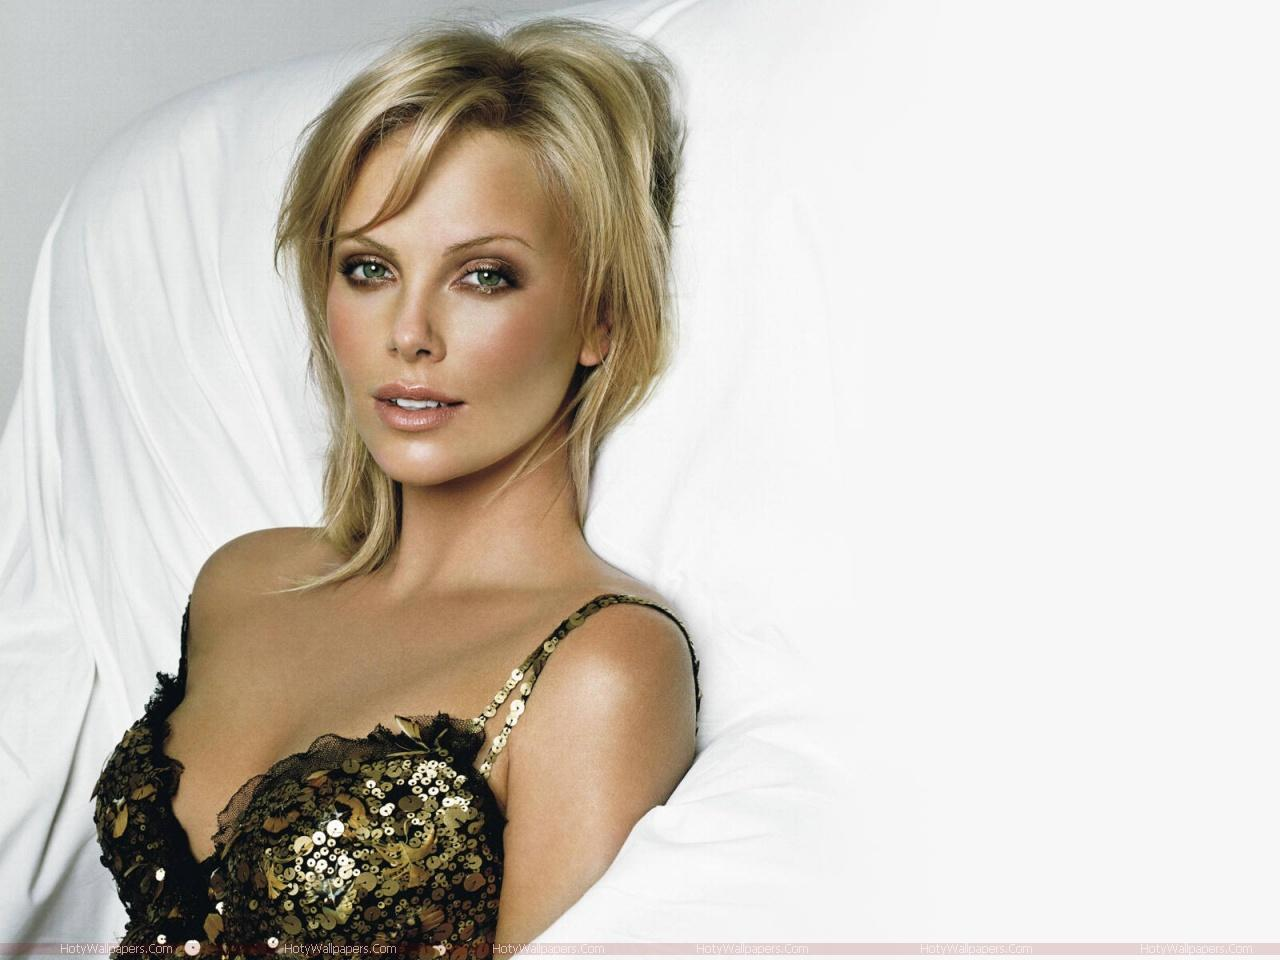 Download this Charlize Theron Hot Wallpaper picture